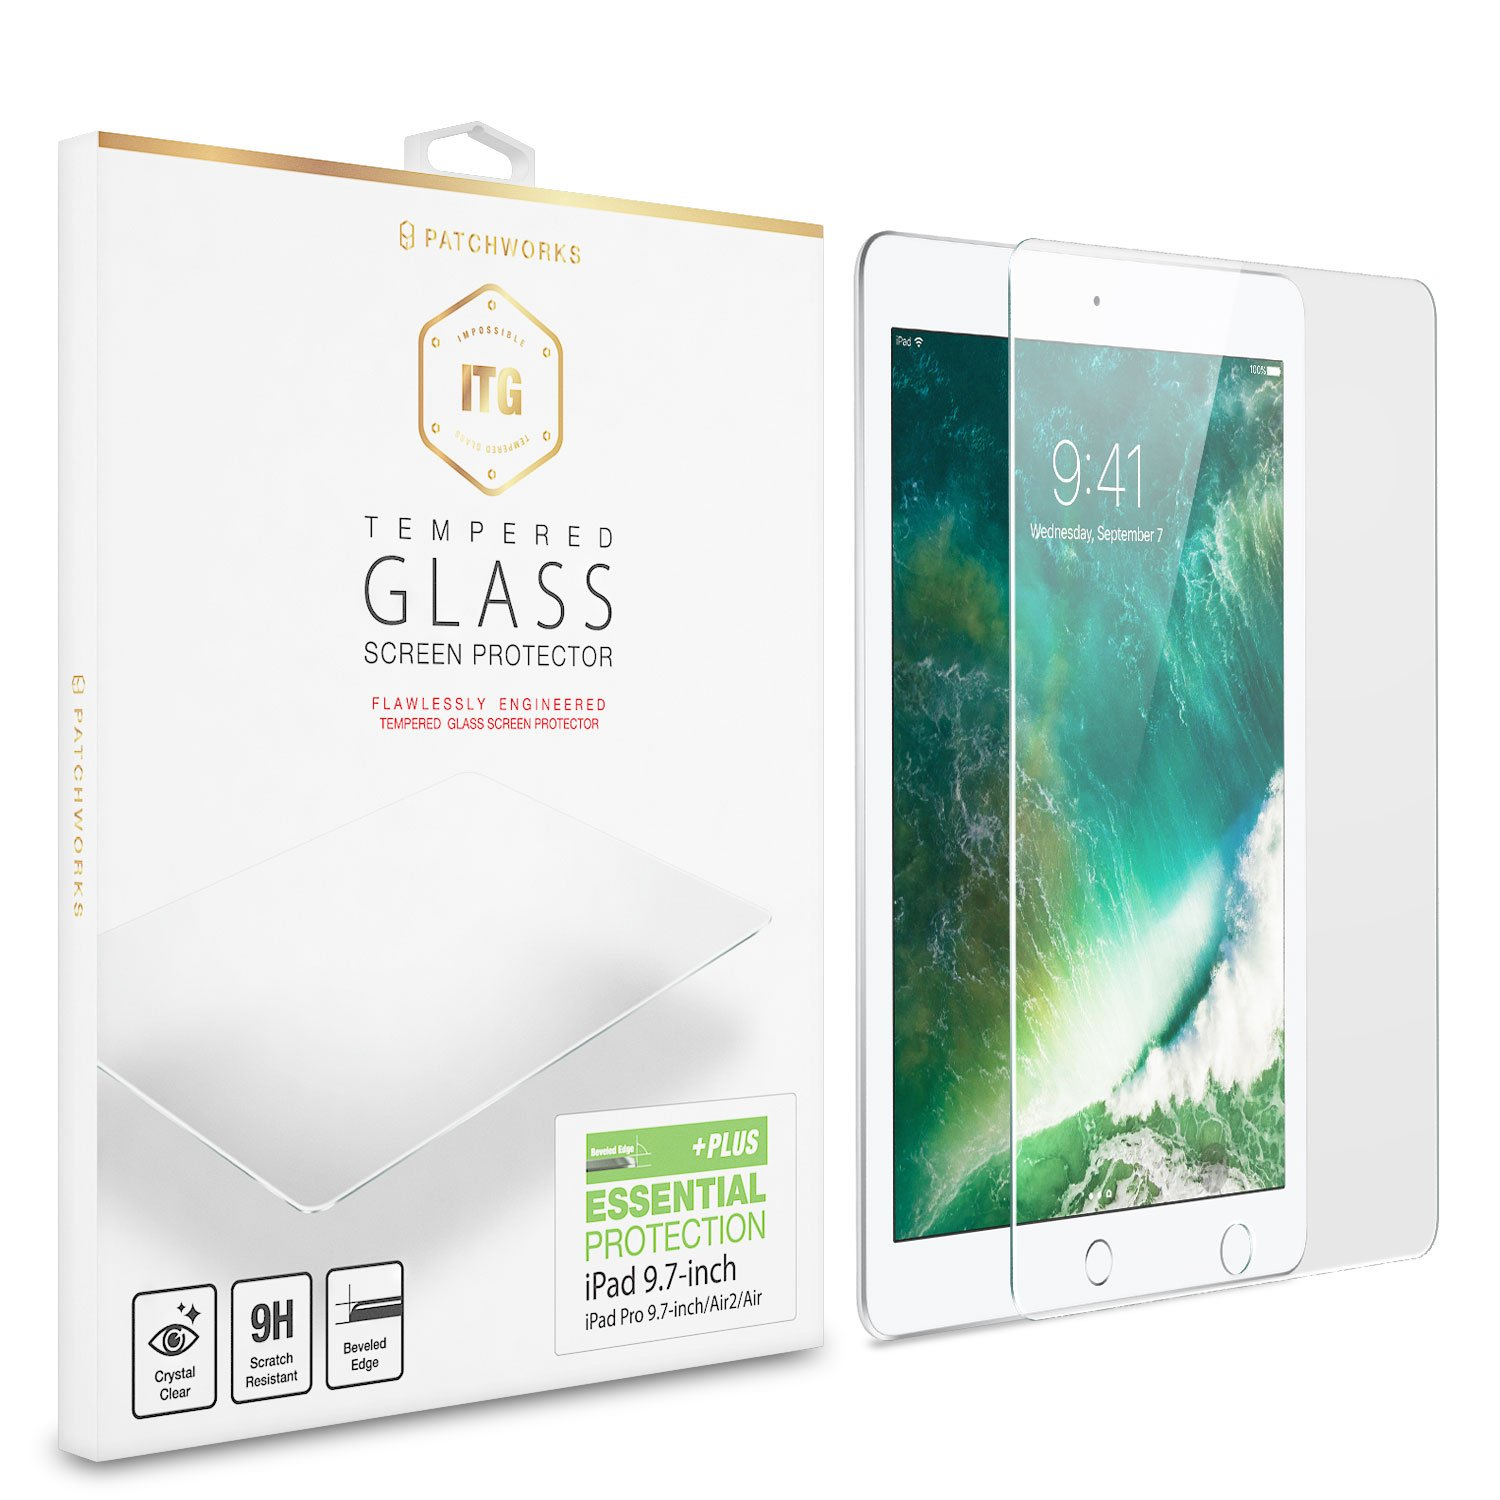 iPad 9.7 Screen Protector Patchworks ITG - Made in Japan Soda-lime Glass, Finished in Korea, Tempered Glass for iPad 9.7 inch 2017/iPad Pro 9.7/iPad Air2/iPad Air